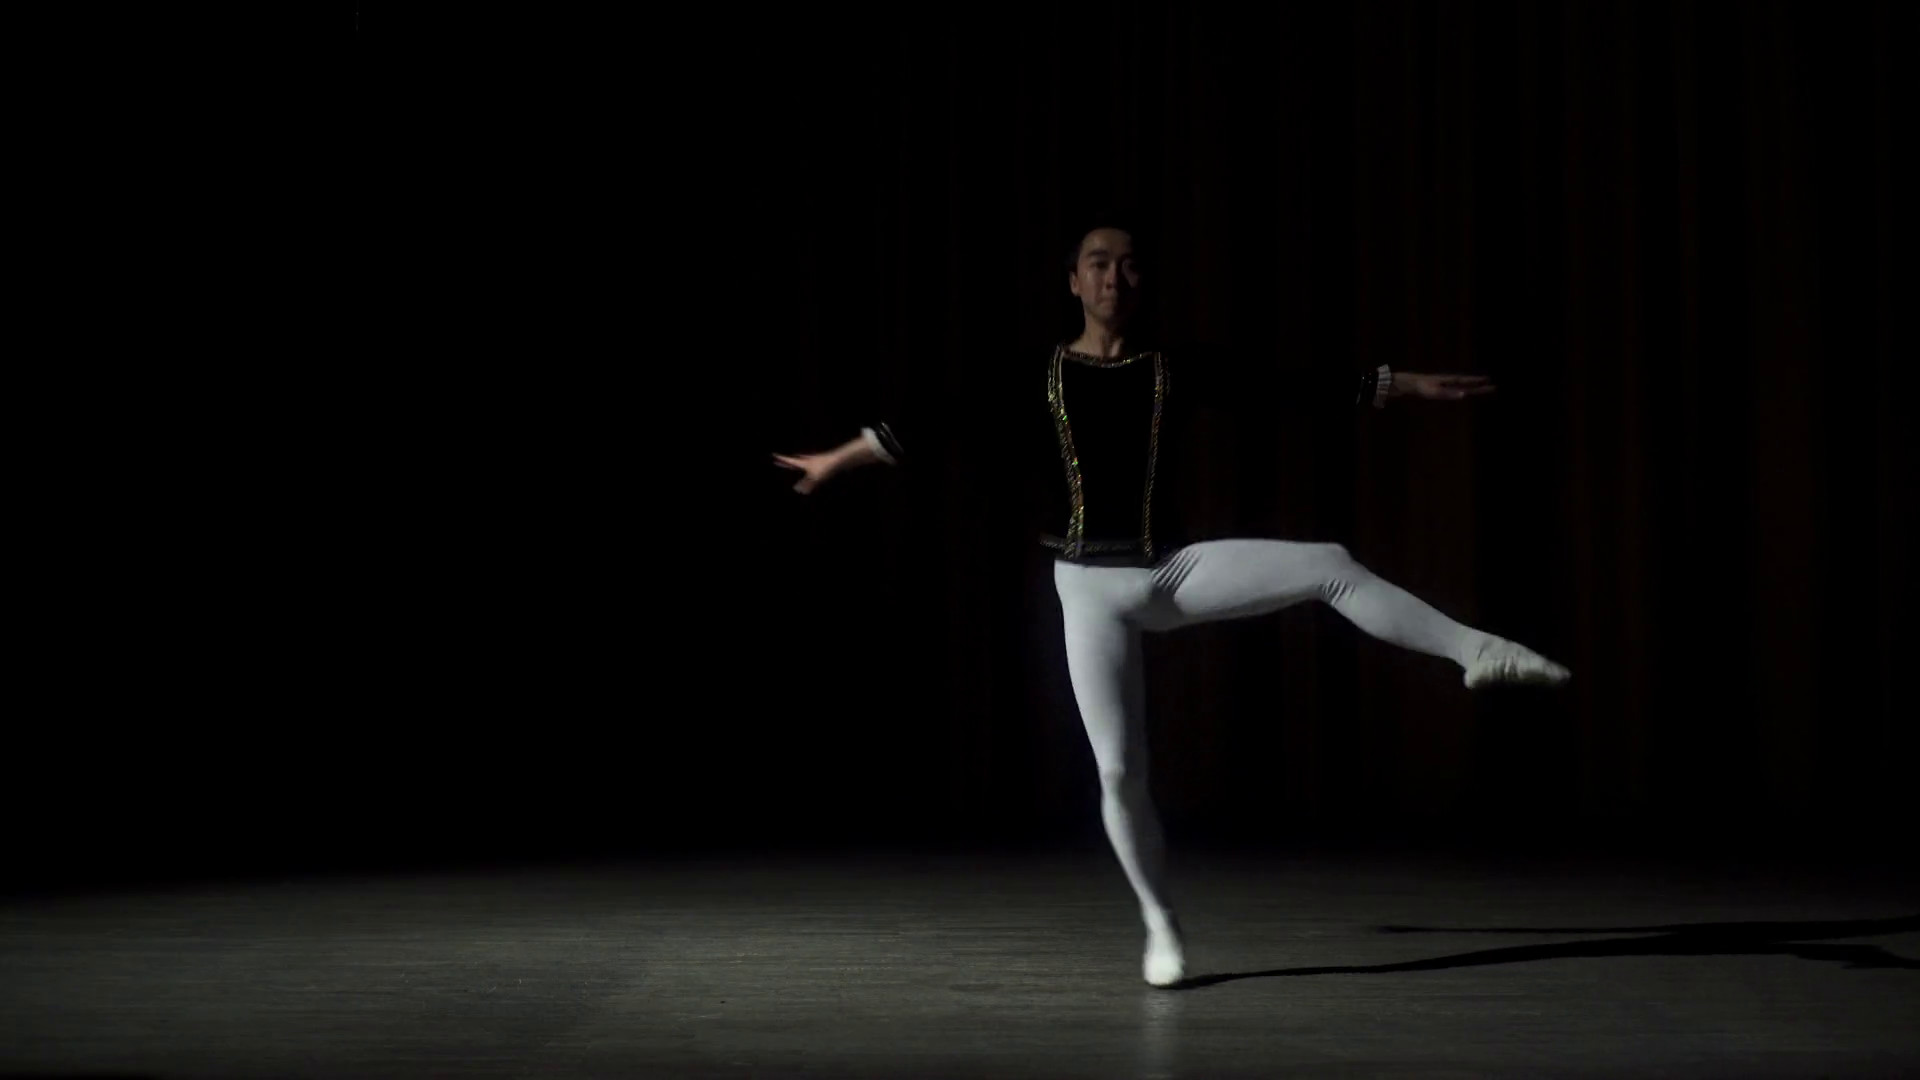 1920x1080 Young male ballet dancer in studio on black background Stock Video Footage  - Storyblocks Video